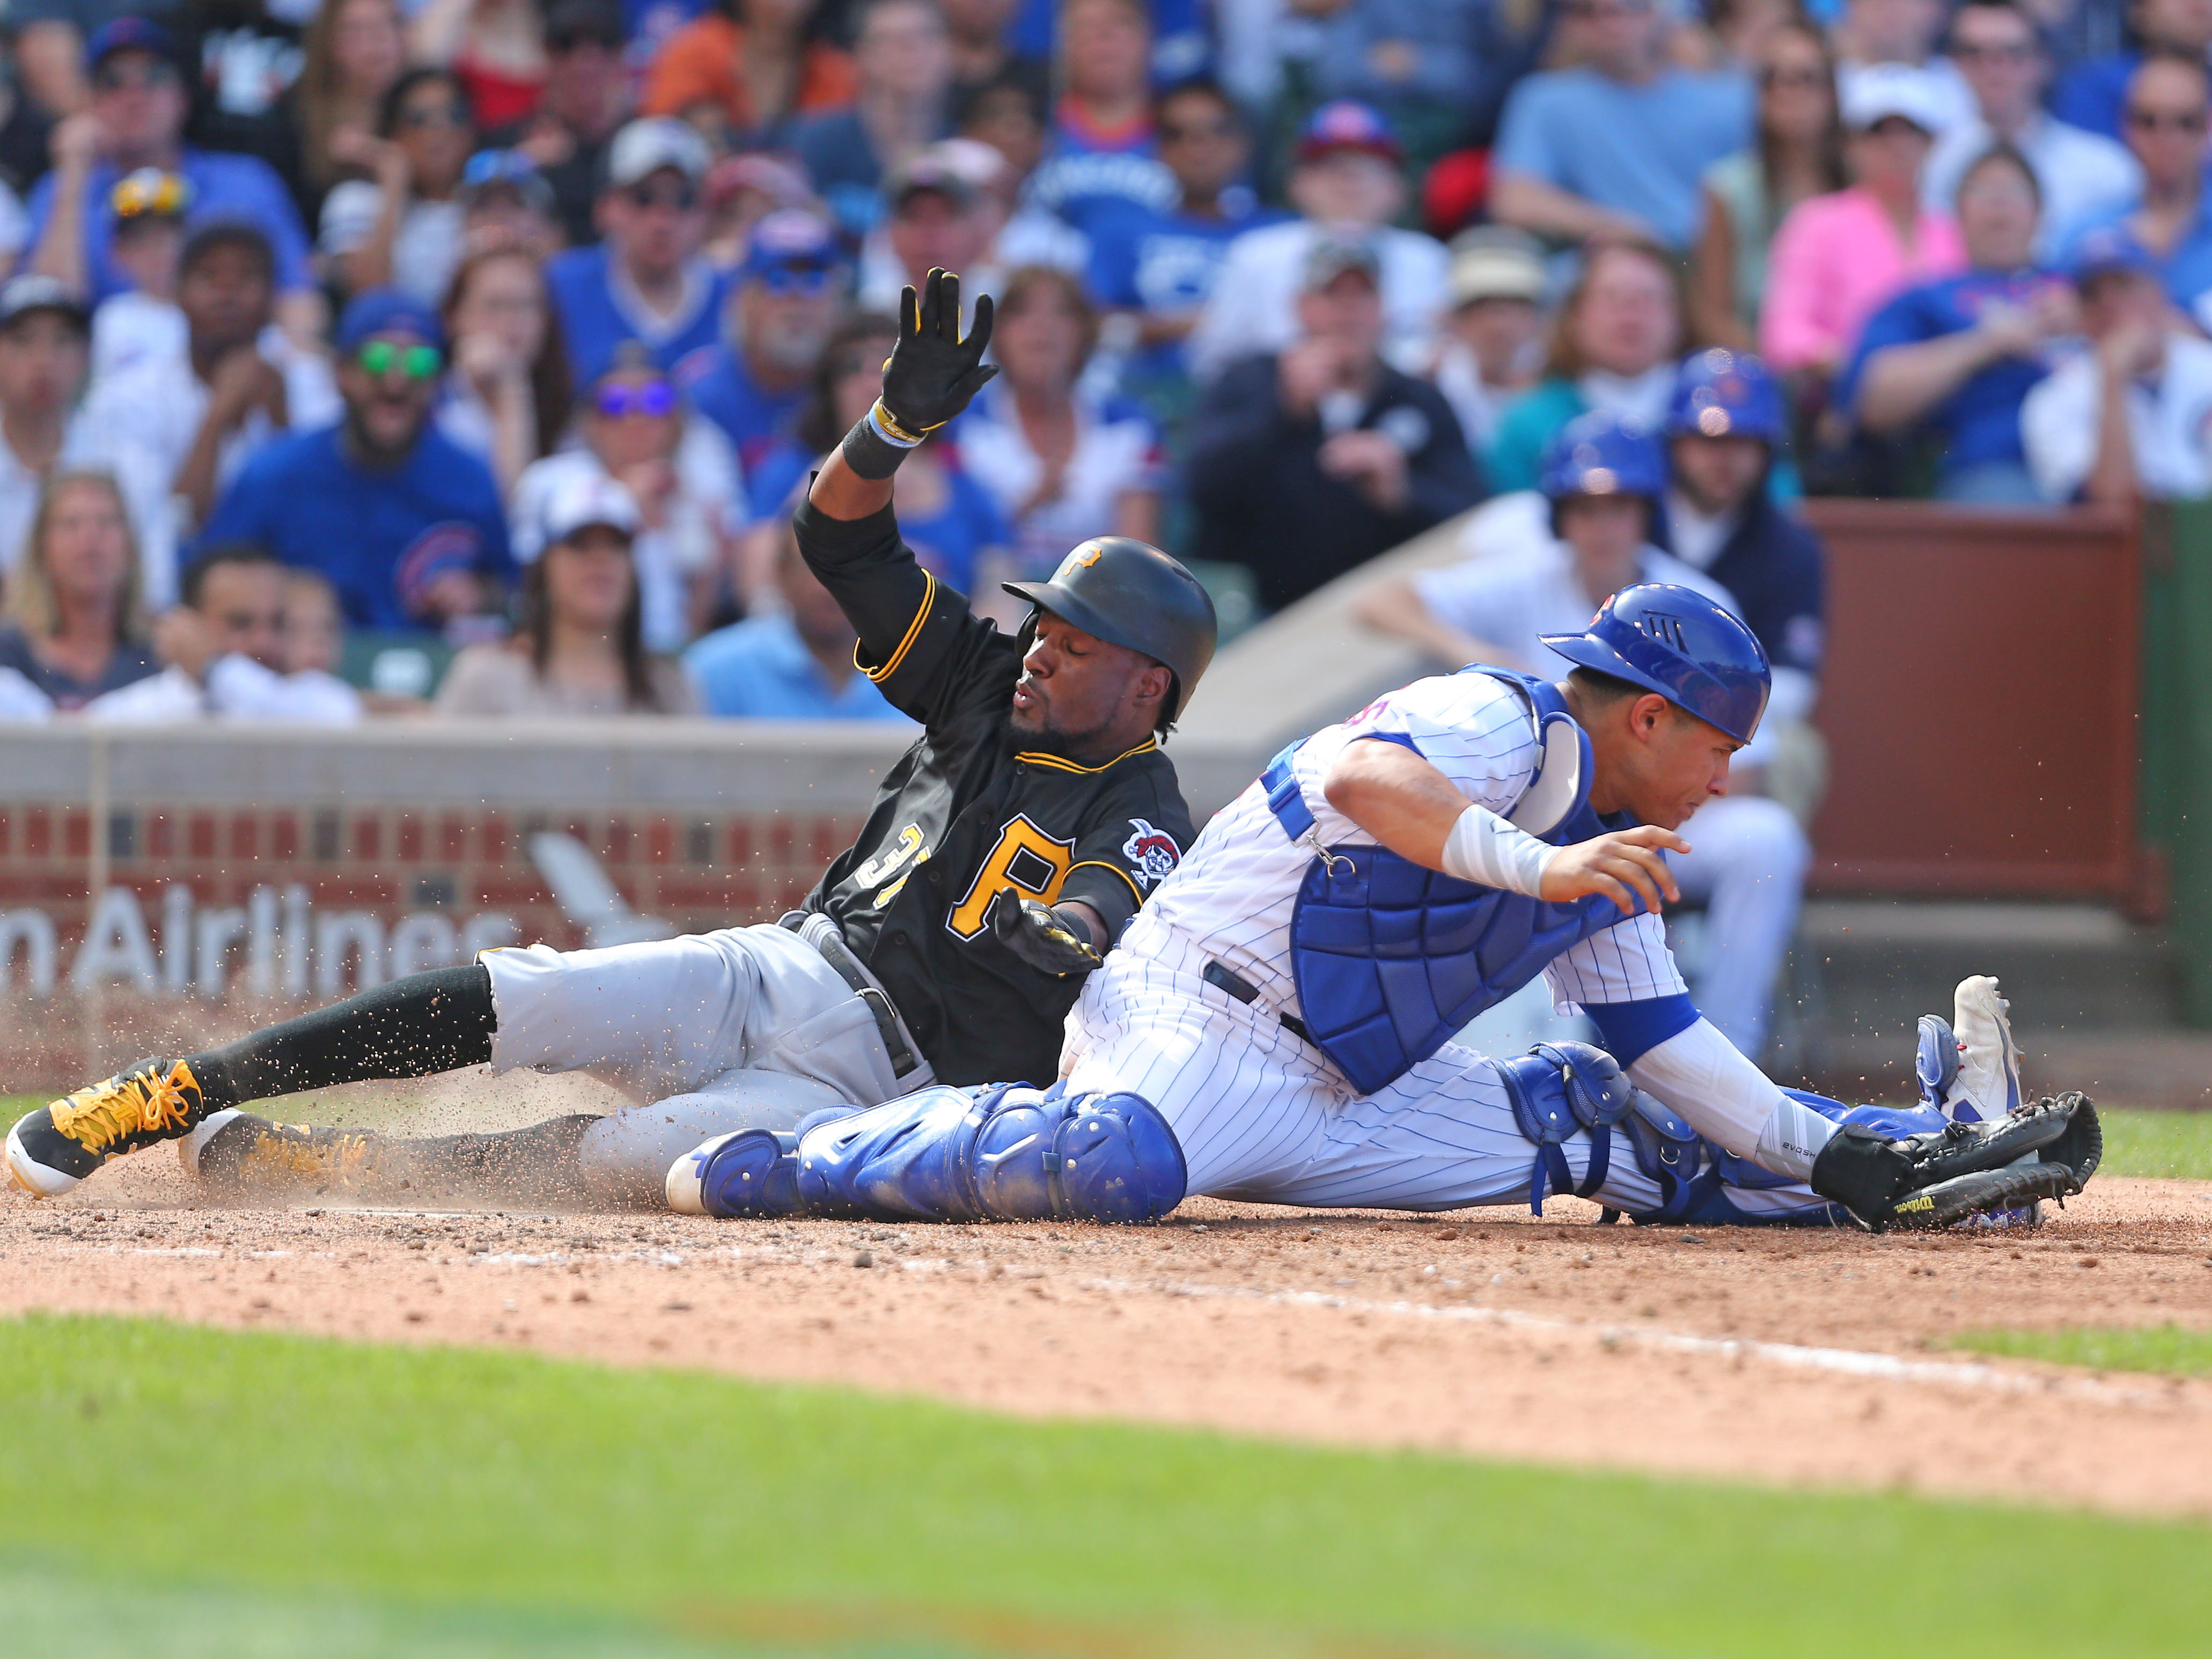 10016214-mlb-pittsburgh-pirates-at-chicago-cubs